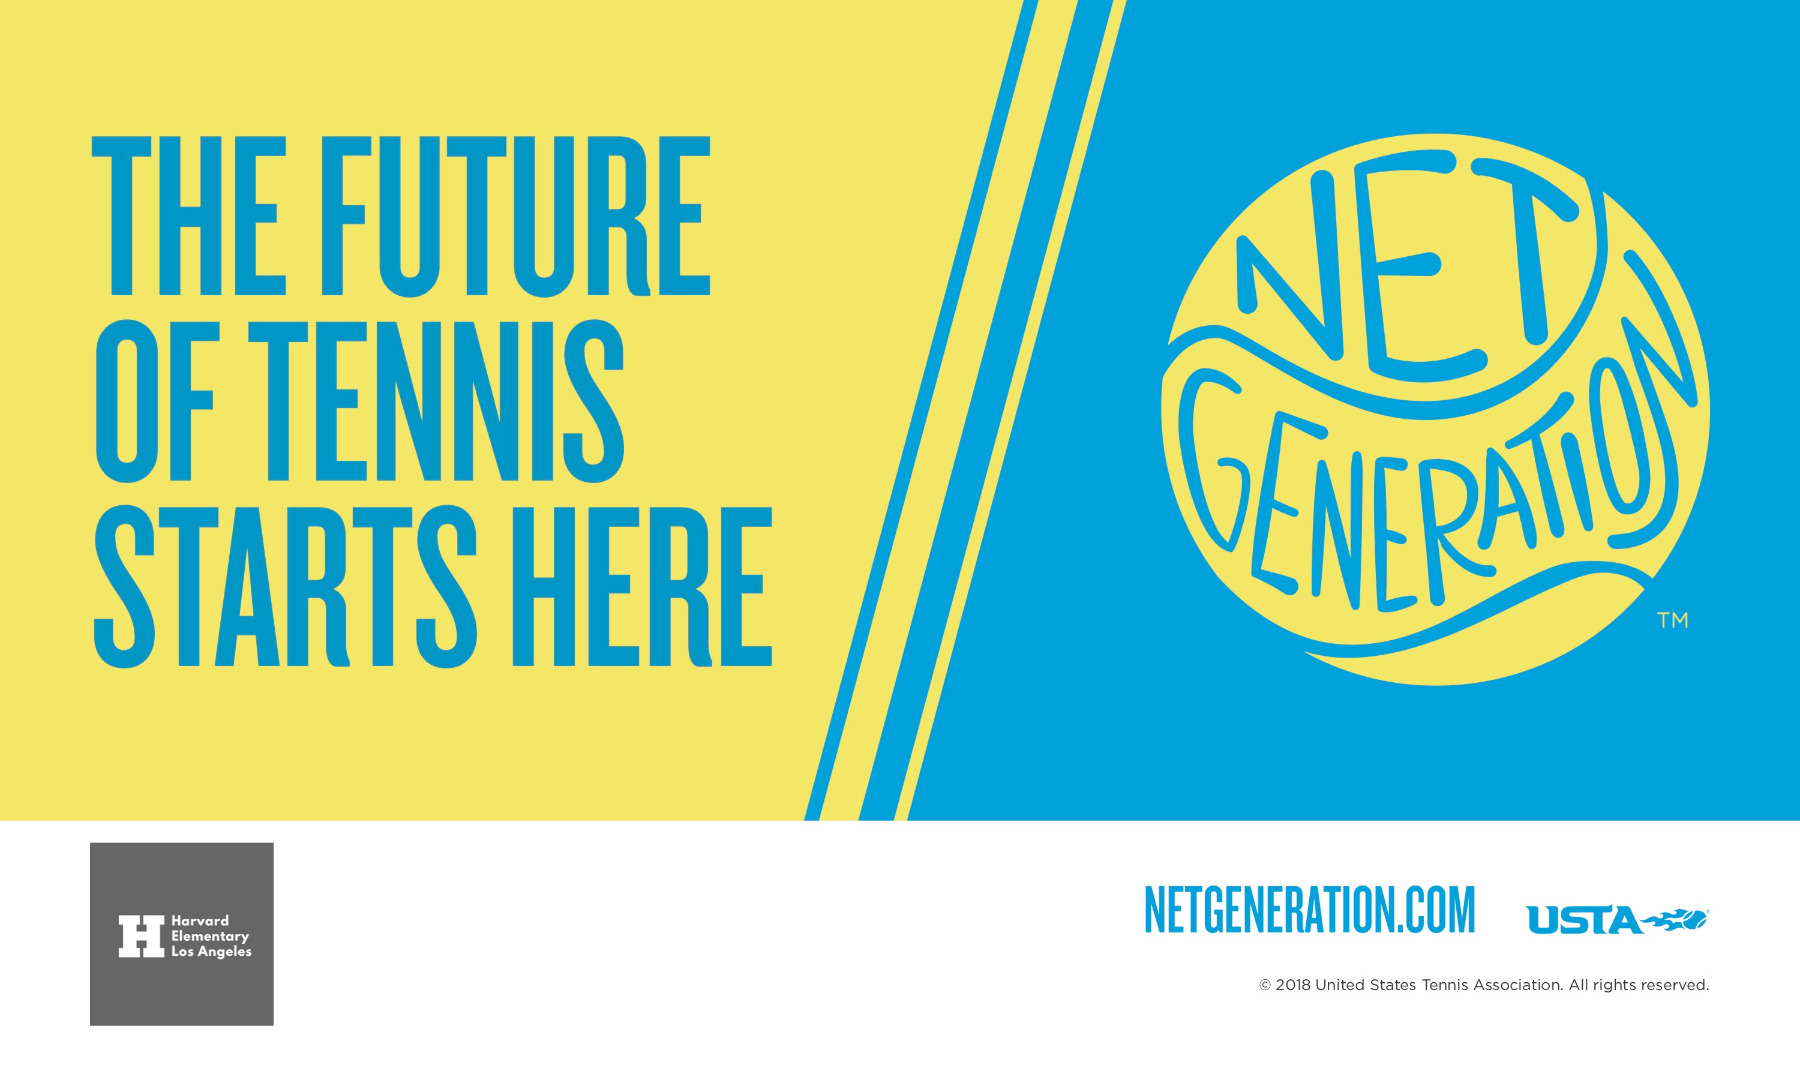 Net Generation: The Future of Tennis Starts Here